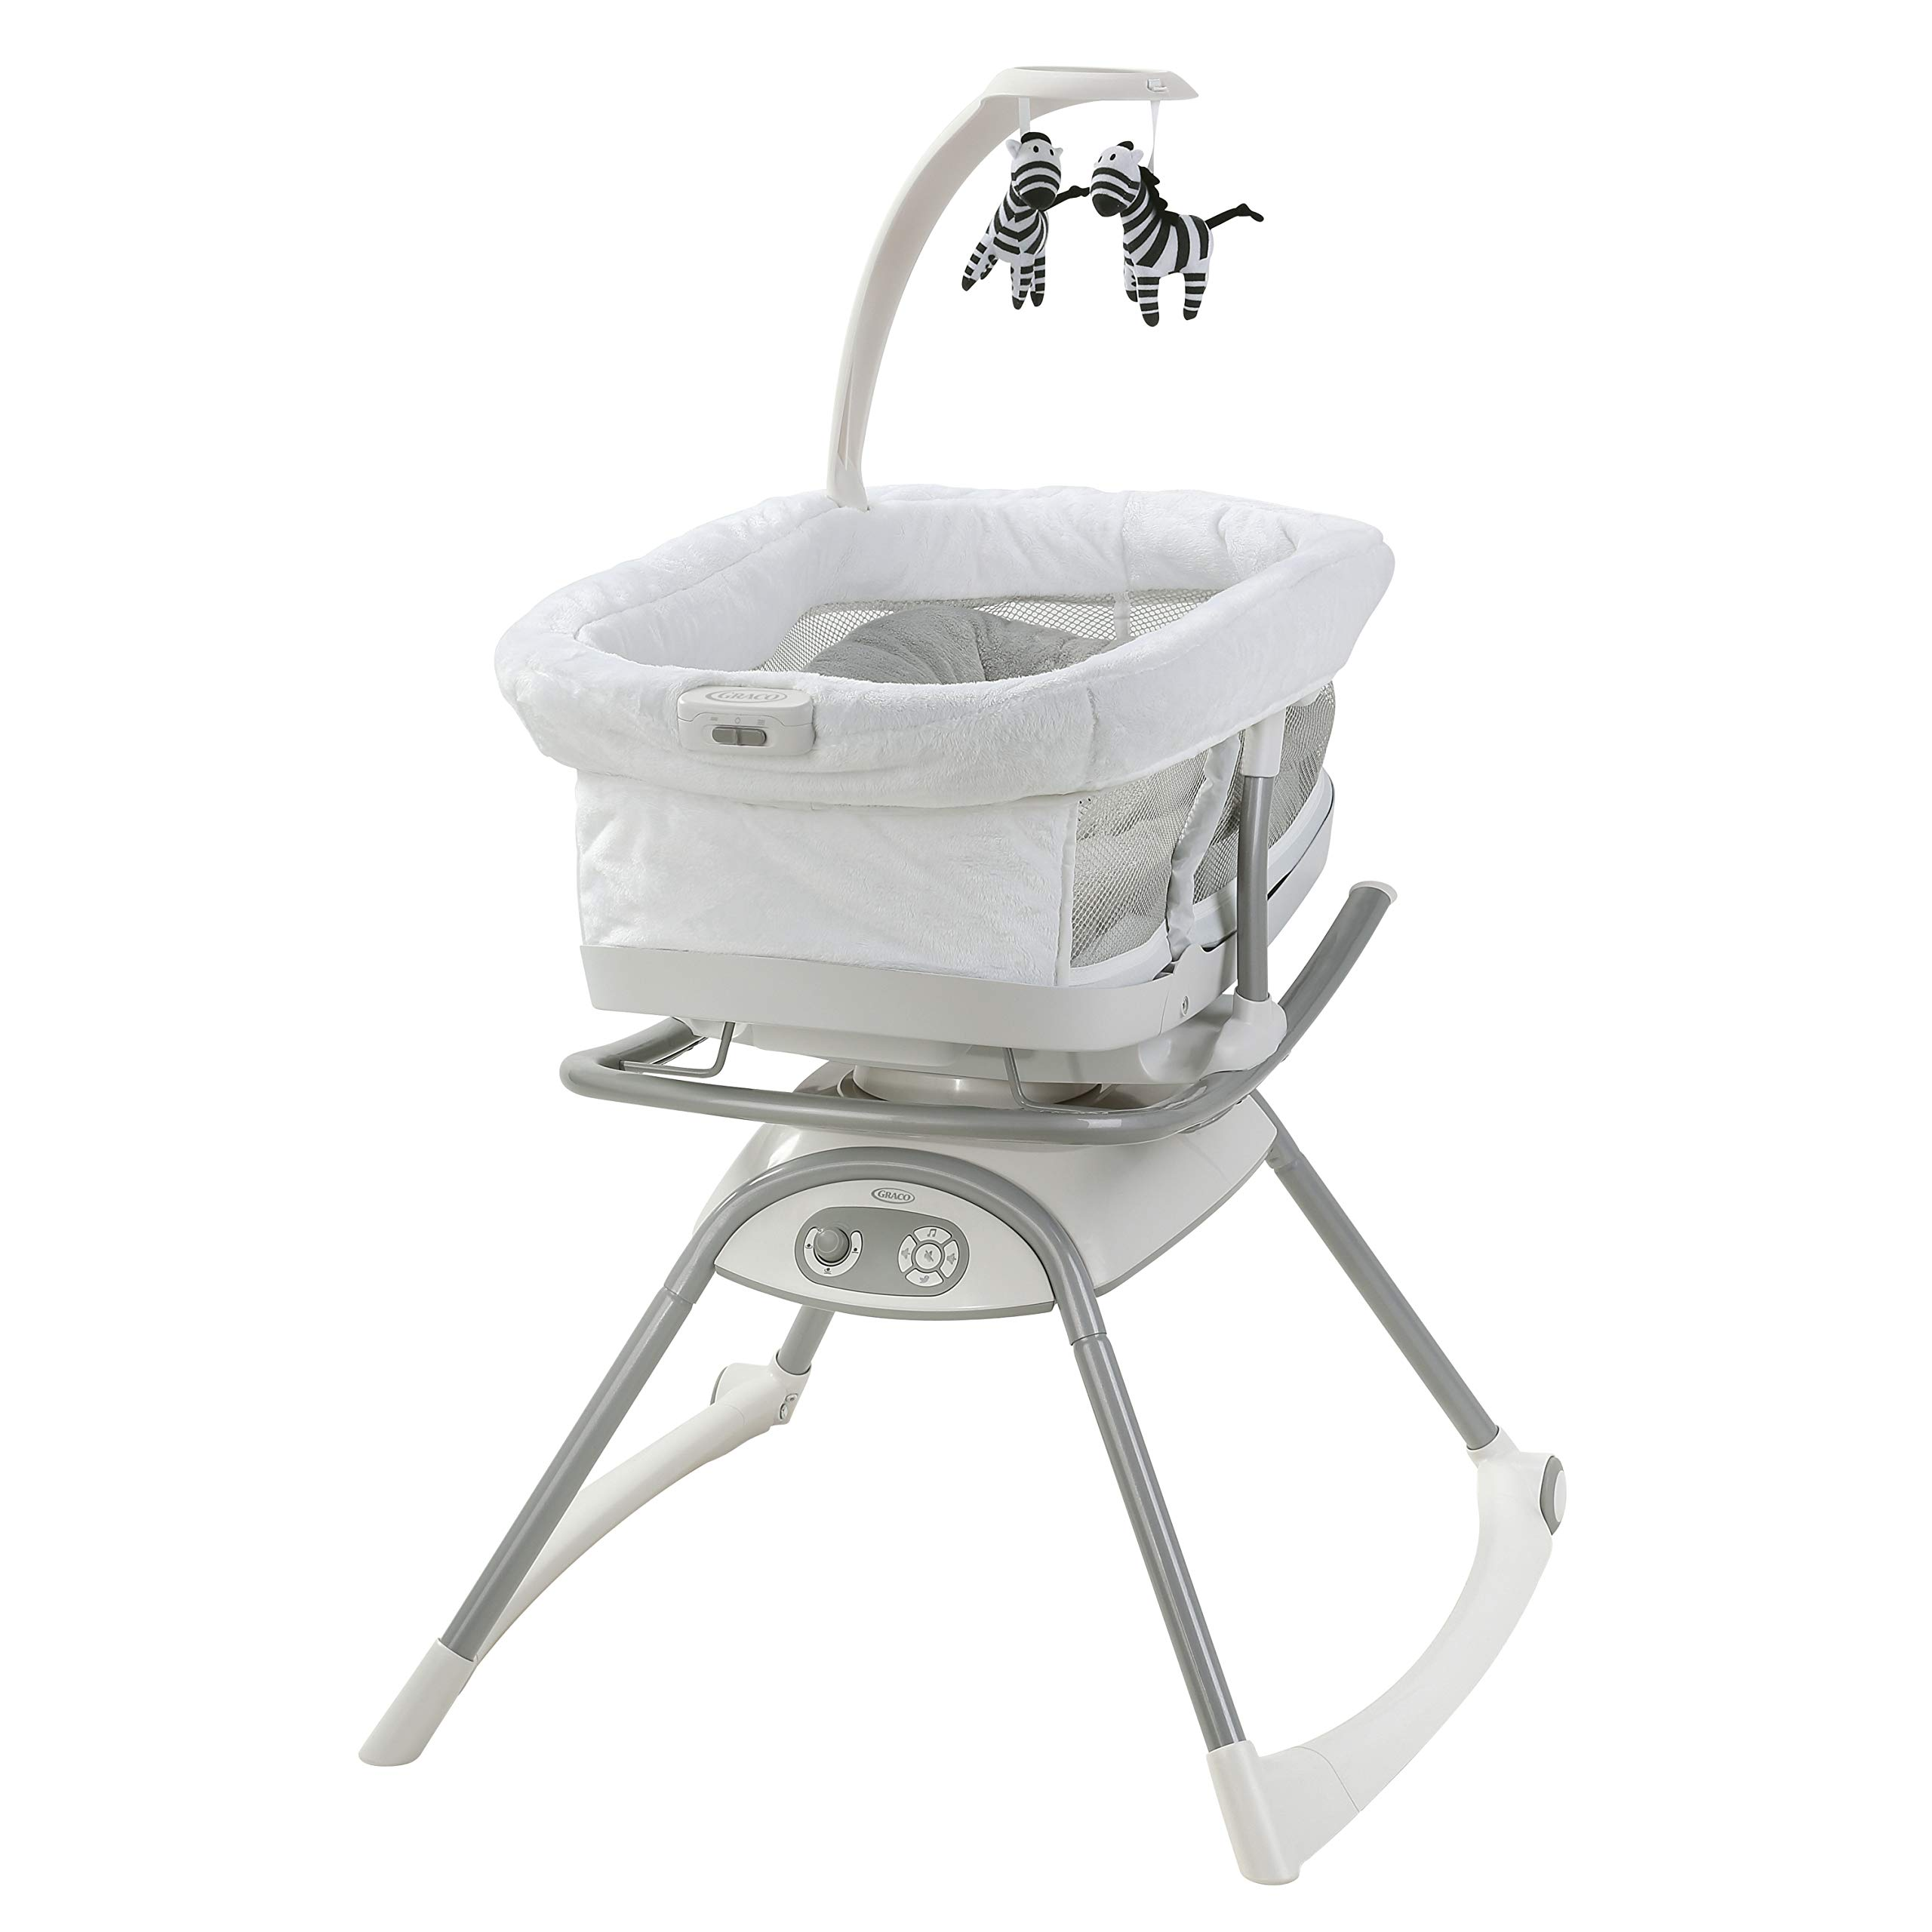 Graco Duet Glide LX Gliding Swing with Portable Sleeper, Zagg